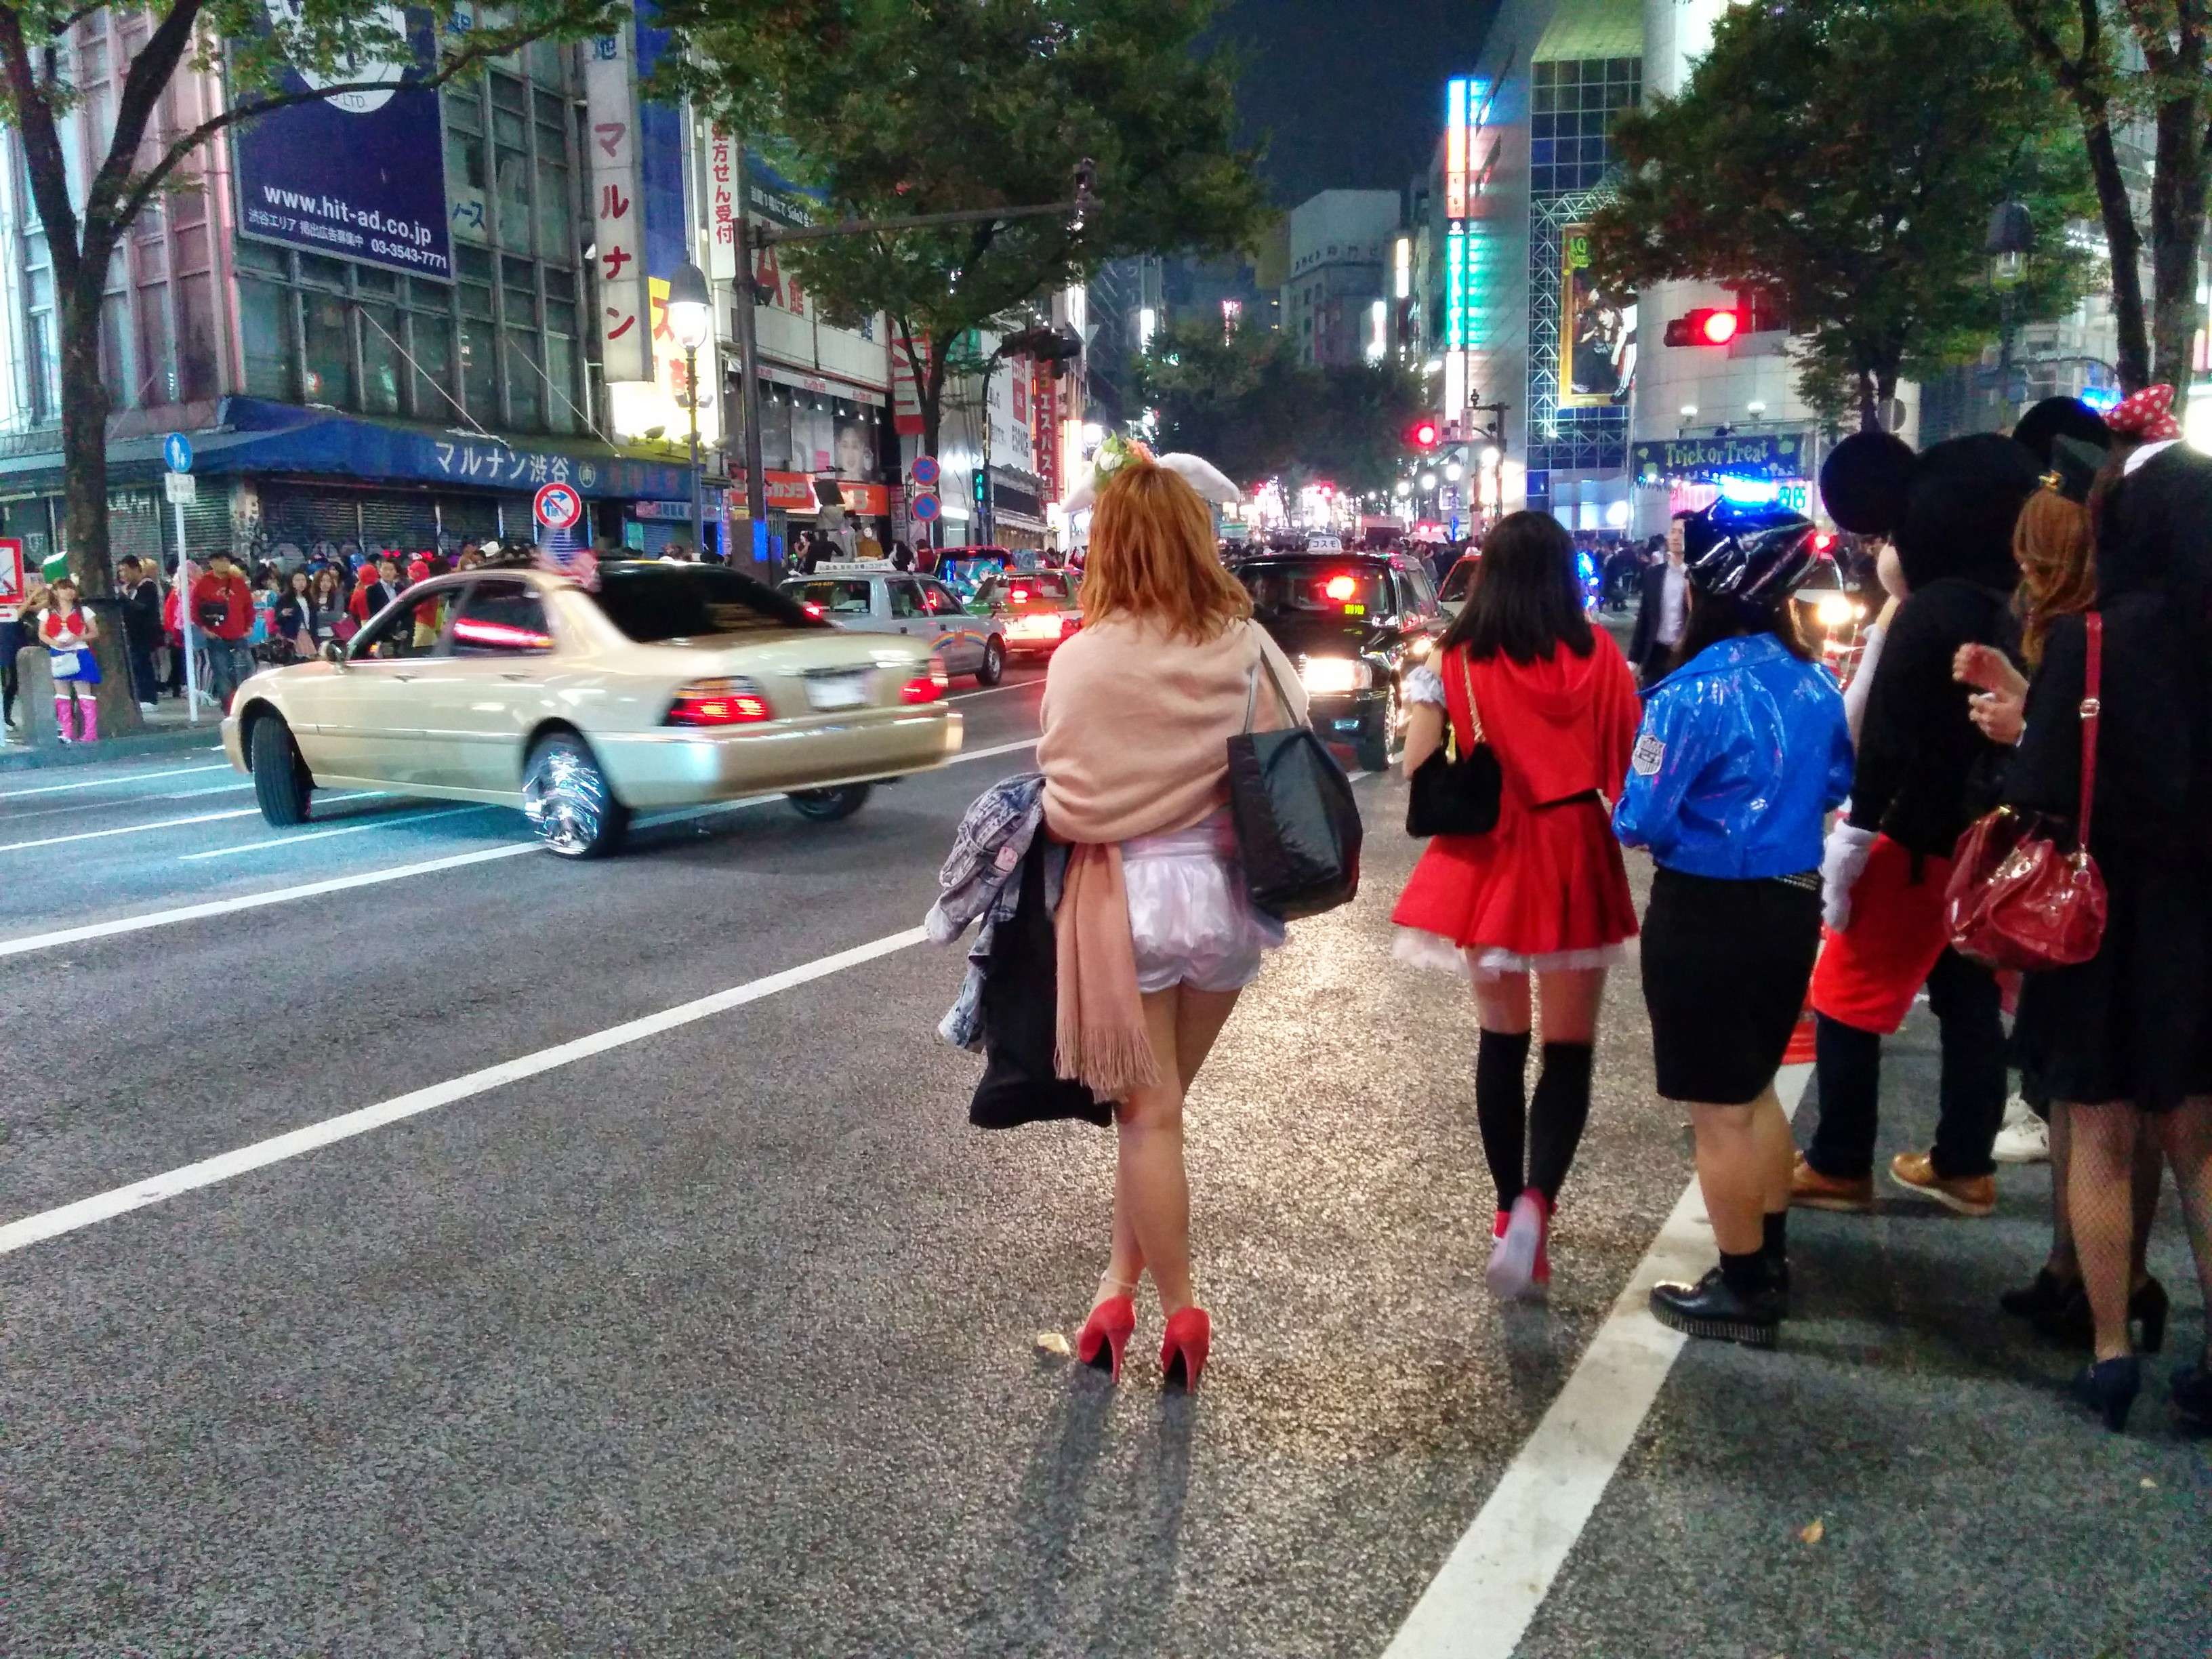 Shibuya Halloween 2014 woman and car